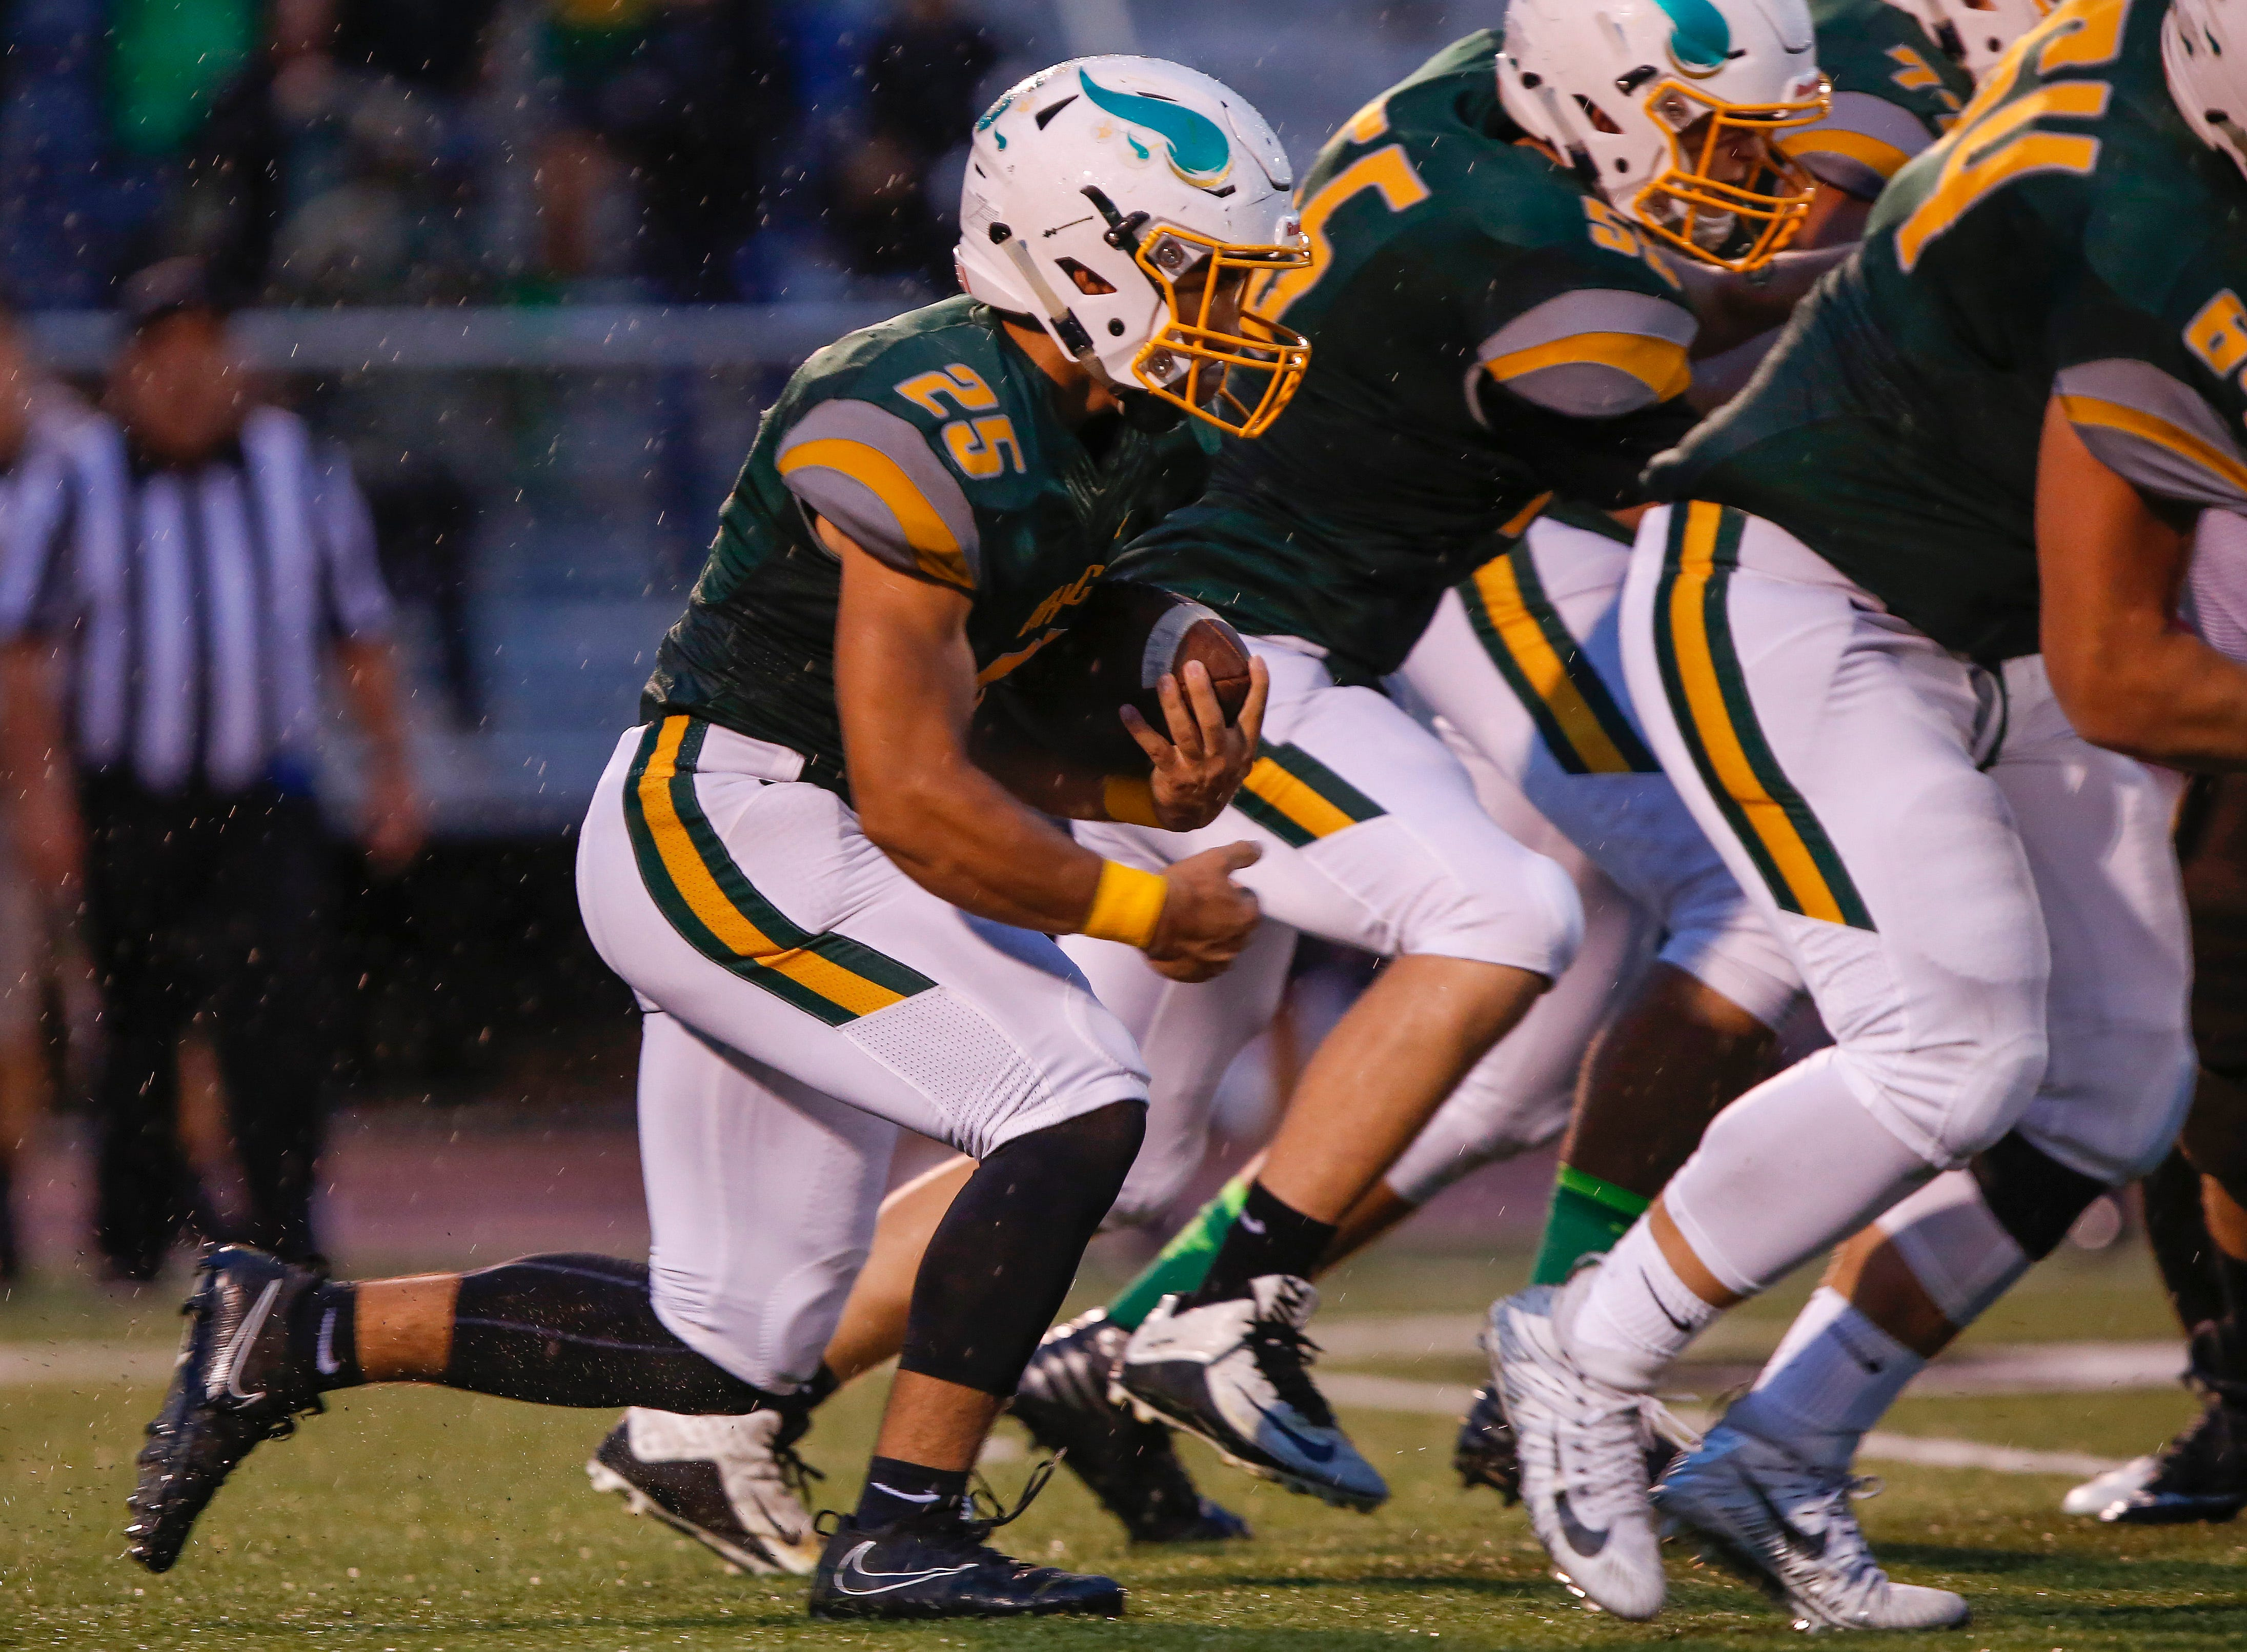 Scenes from the Kickapoo vs. Parkview football game on a soggy night at Parkview High School on Friday, Sep. 7, 2018.